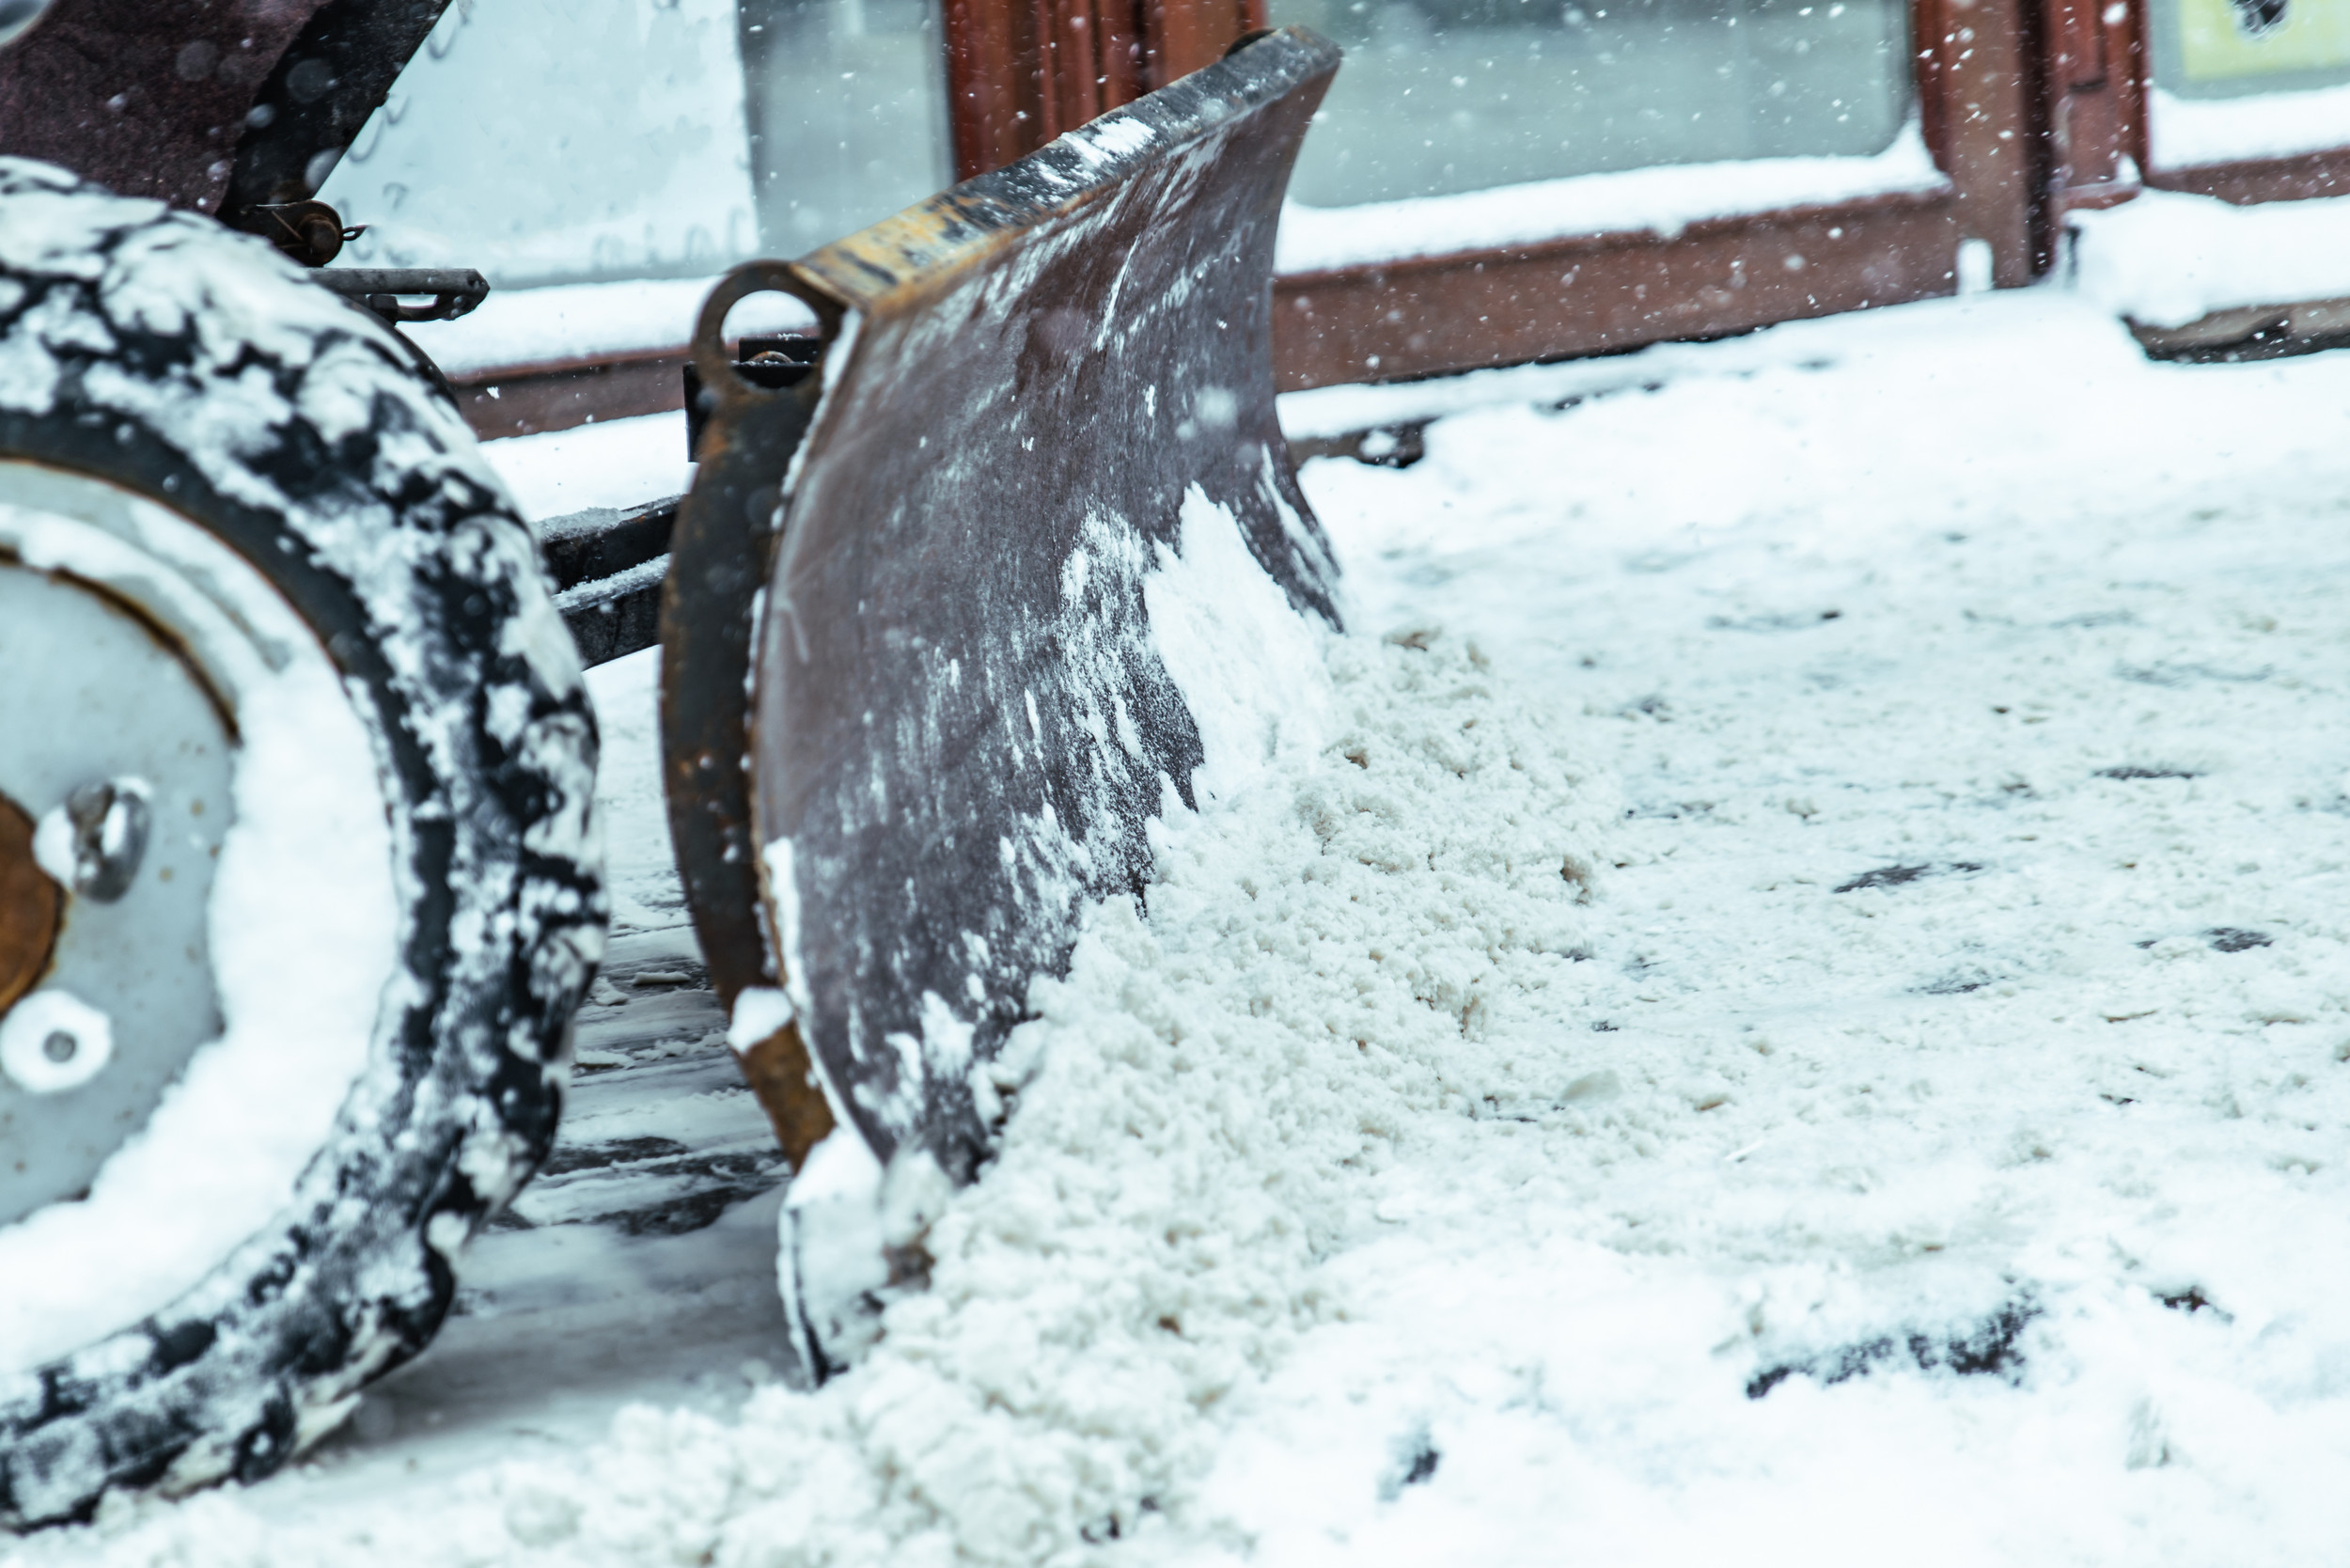 Homeowner associations save money by contracting directly with snow removal services